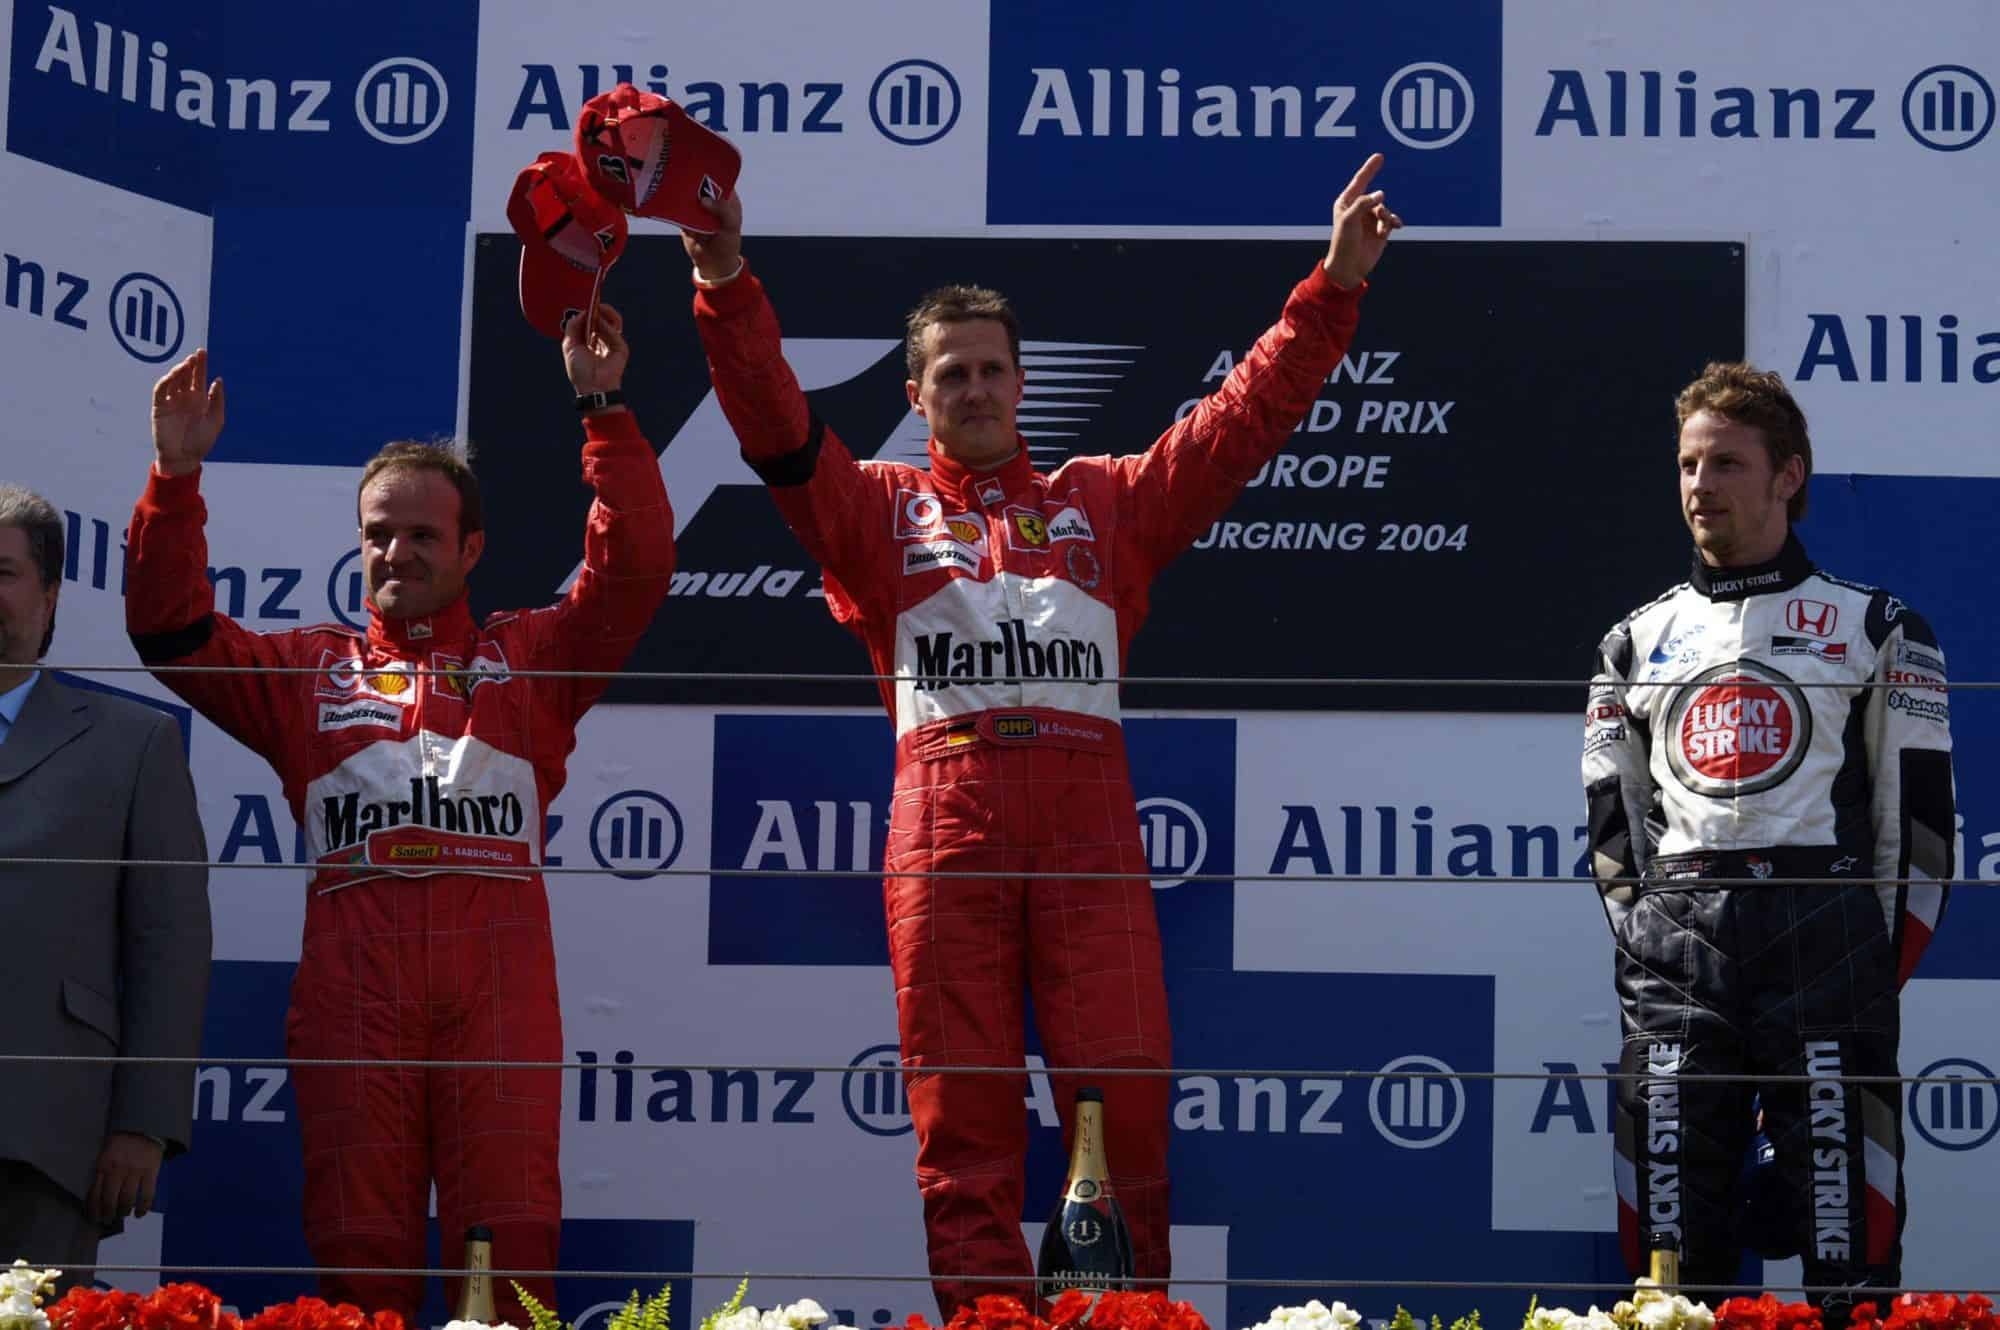 European-GP-F1-2004-Nurburgring-podium-Schumacher-Barrichello-Button-Photo-Ferrari